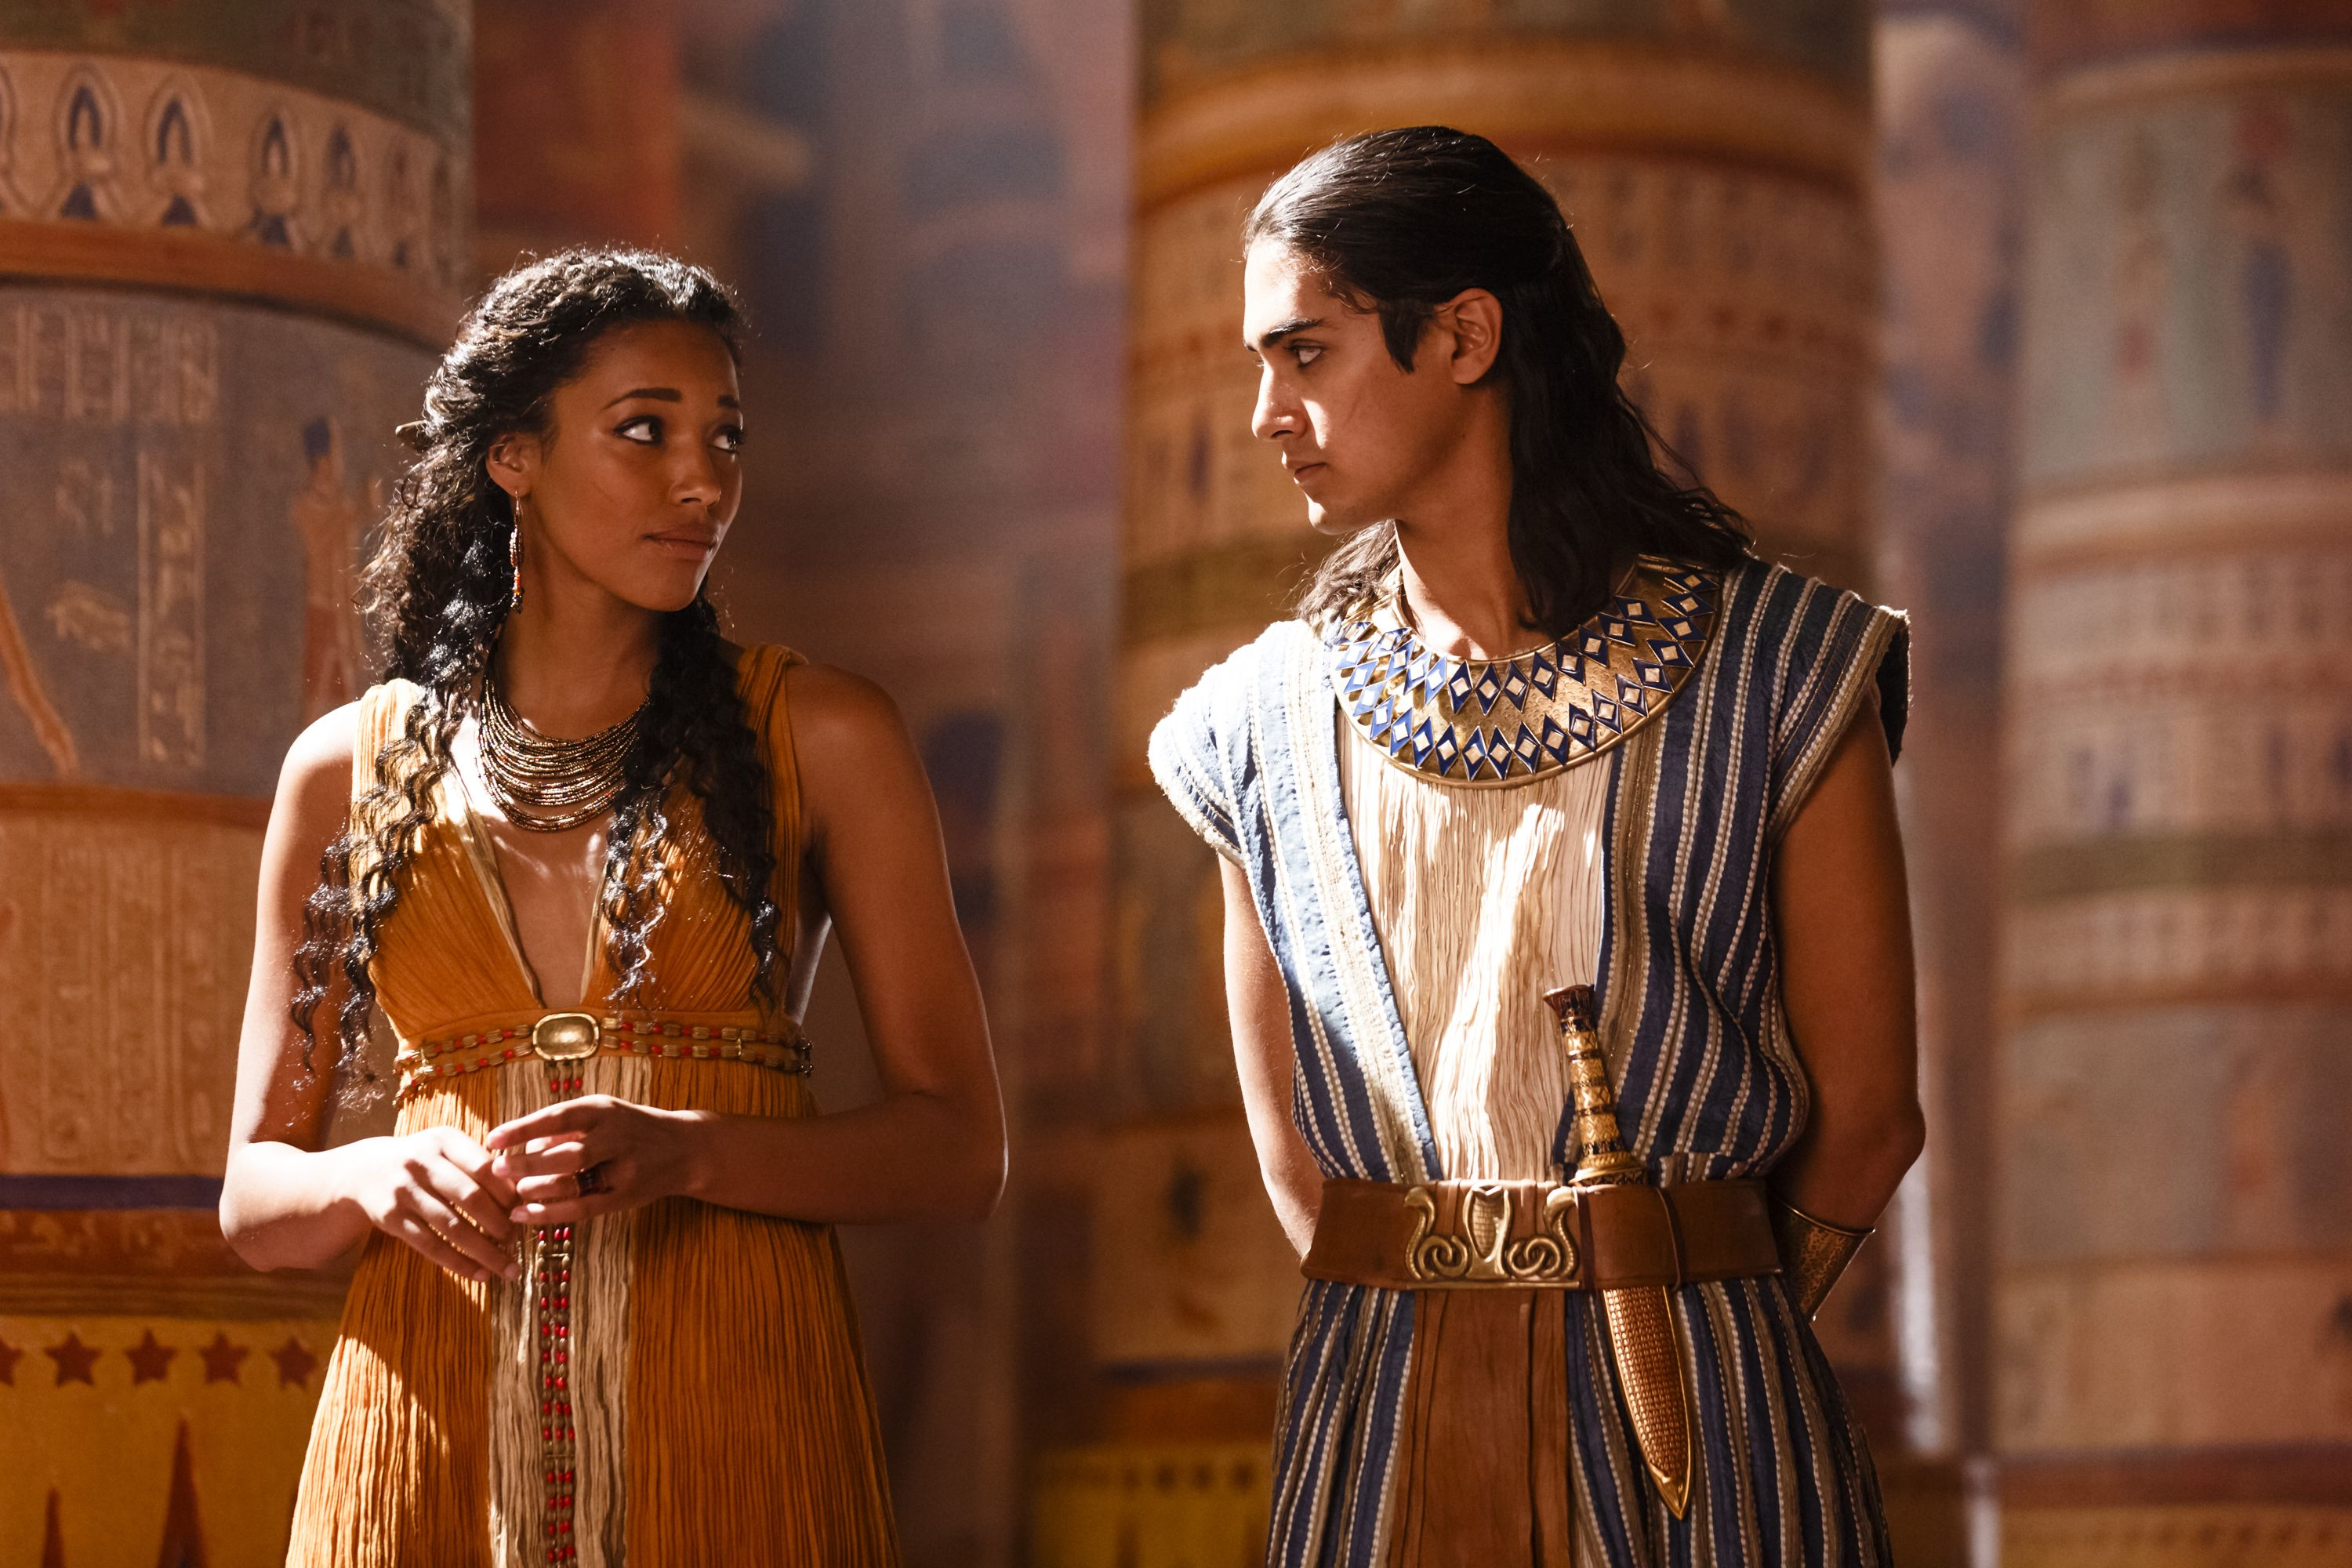 spike 39 s mini series tut with avan jogia and kylie. Black Bedroom Furniture Sets. Home Design Ideas